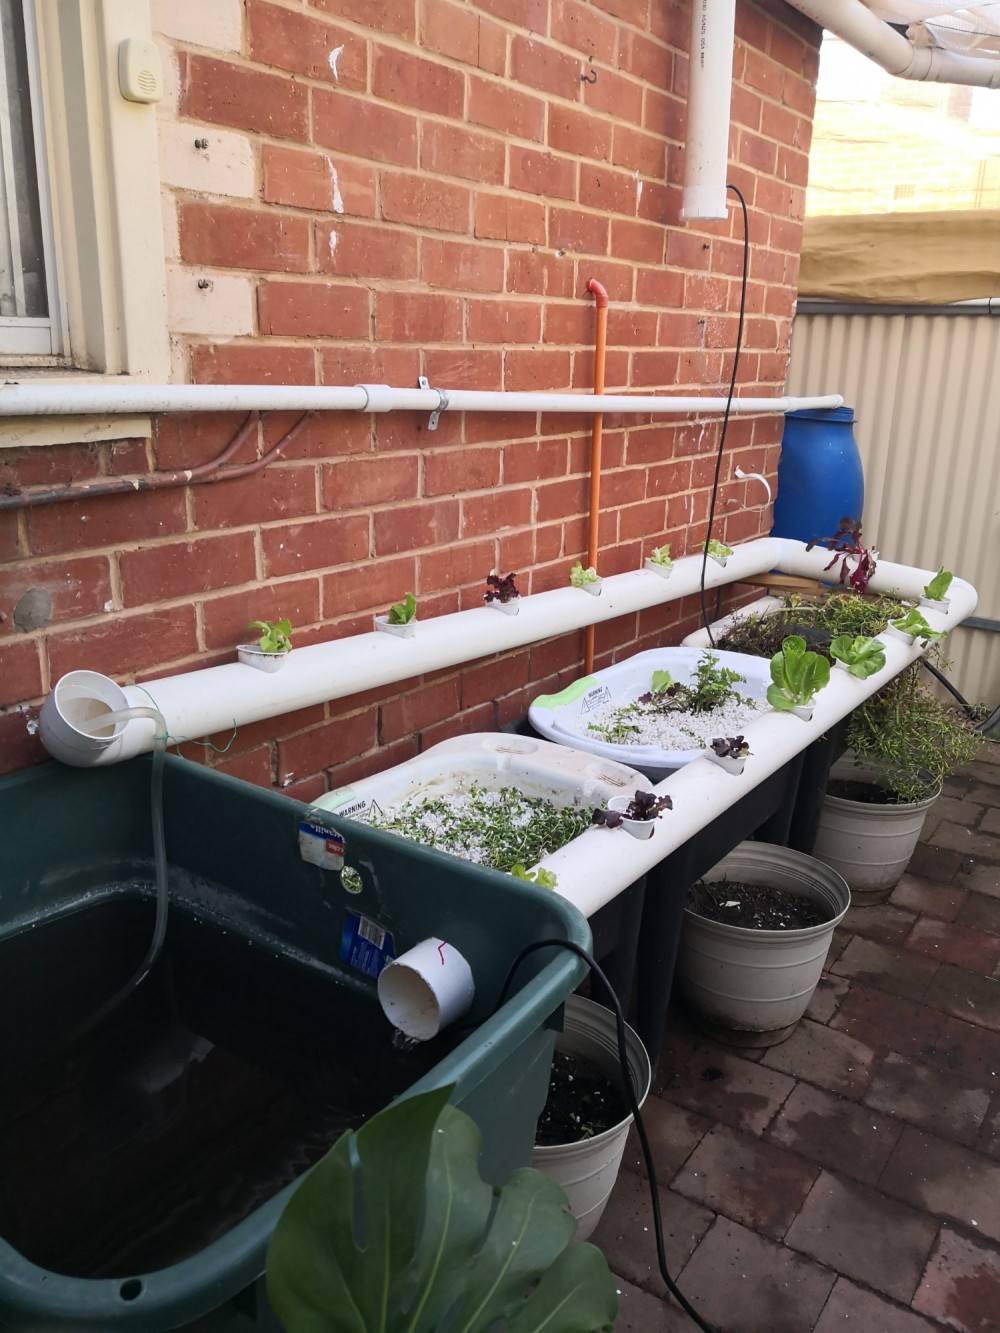 Our new aquaponics section